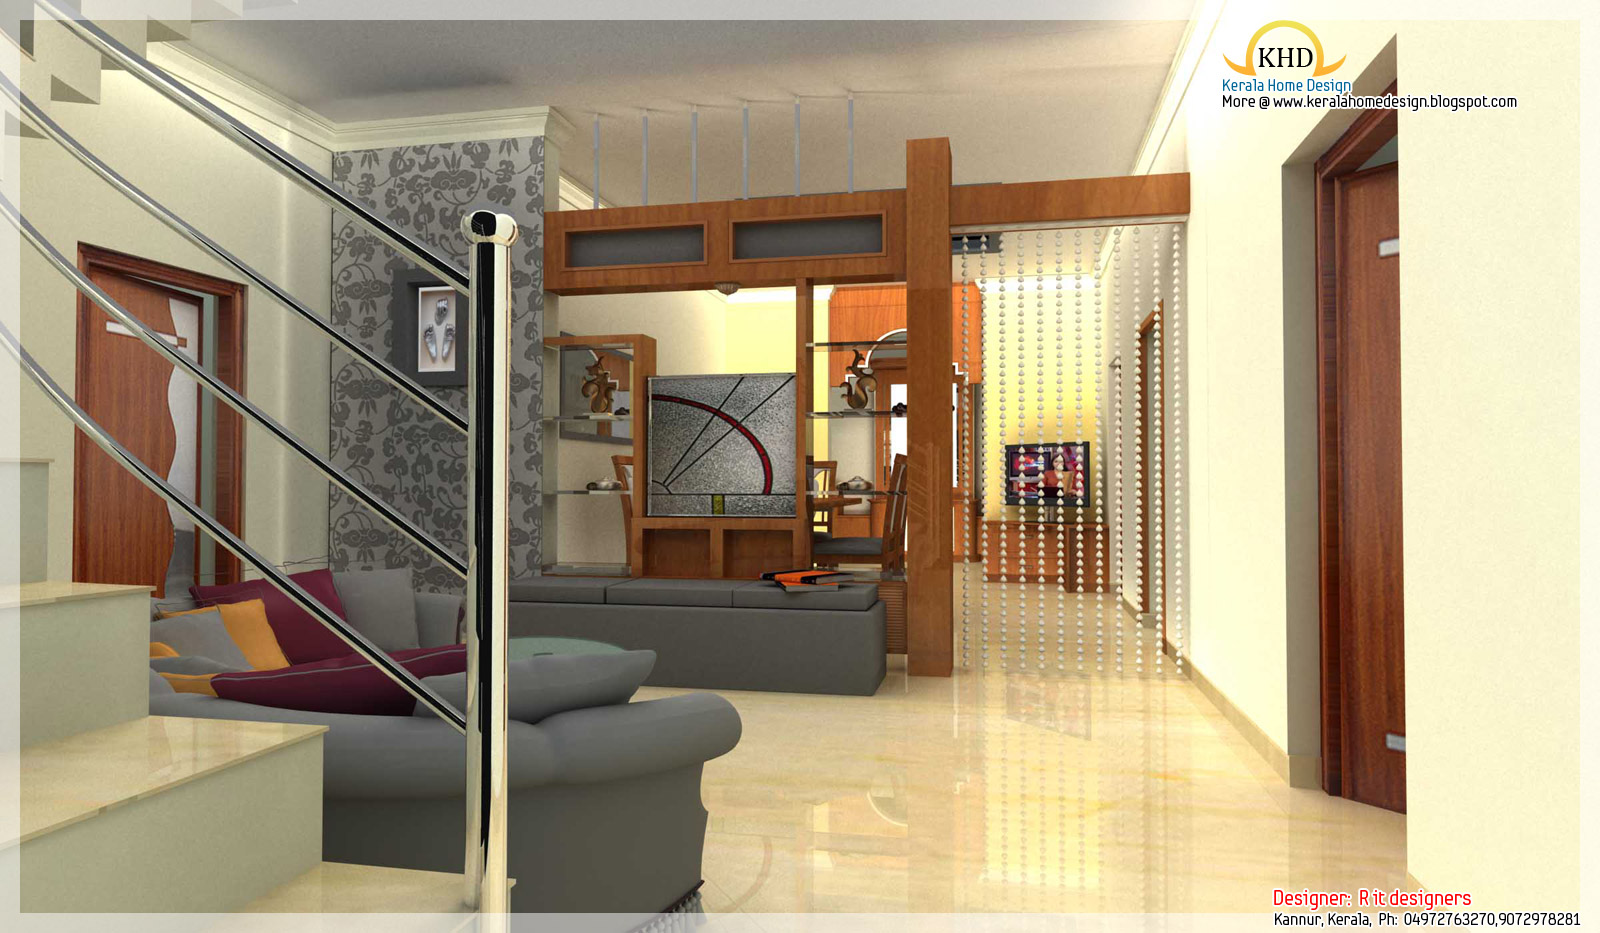 Interior design idea renderings kerala home design and for Kerala interior designs